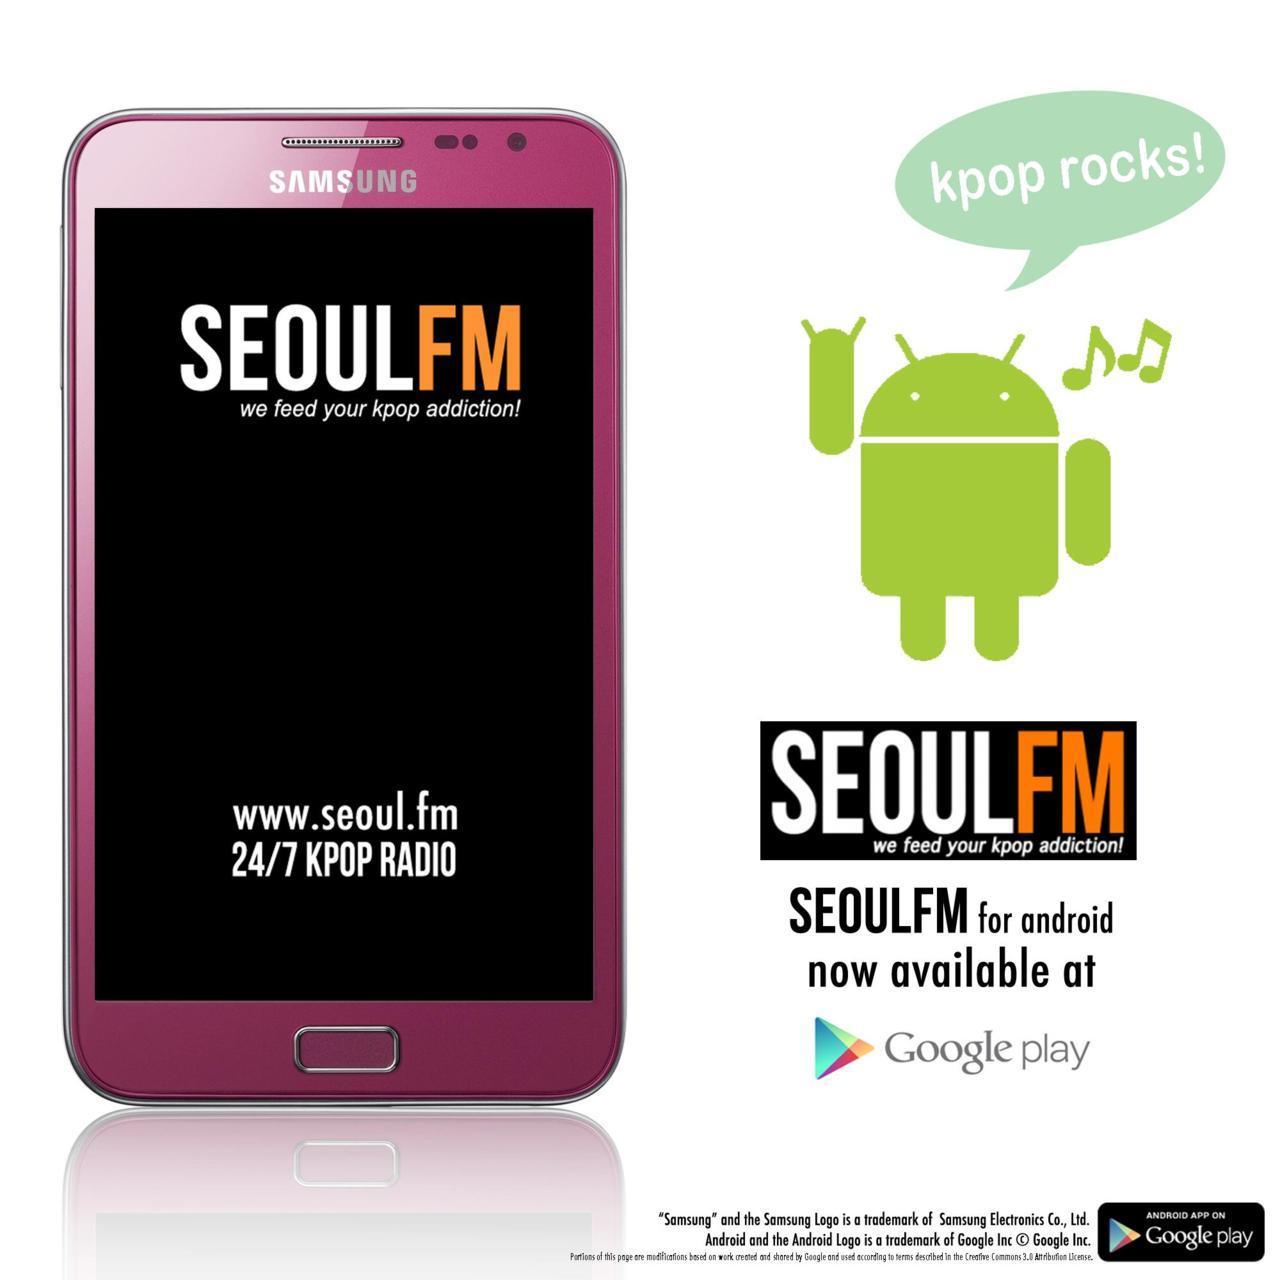 SEOULFM on Google Play!